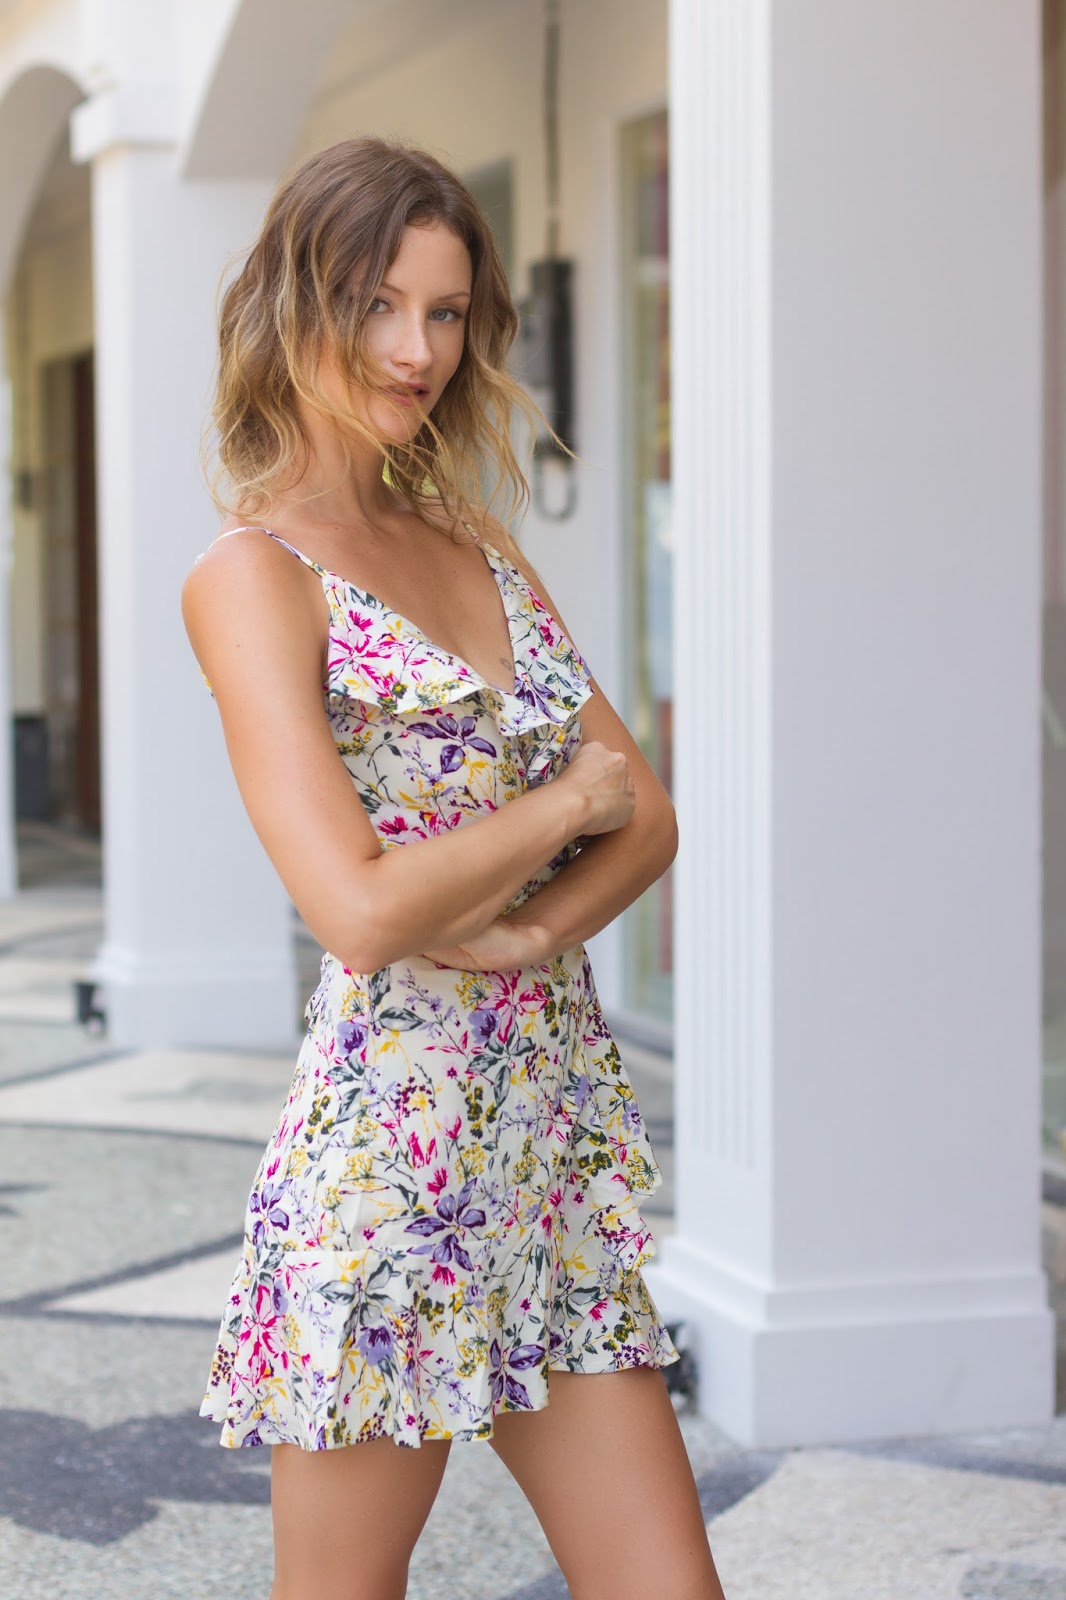 fashion designer and blogger, Alison Hutchinson, is wearing a KAYVALYA Raya Wrap dress in lemon